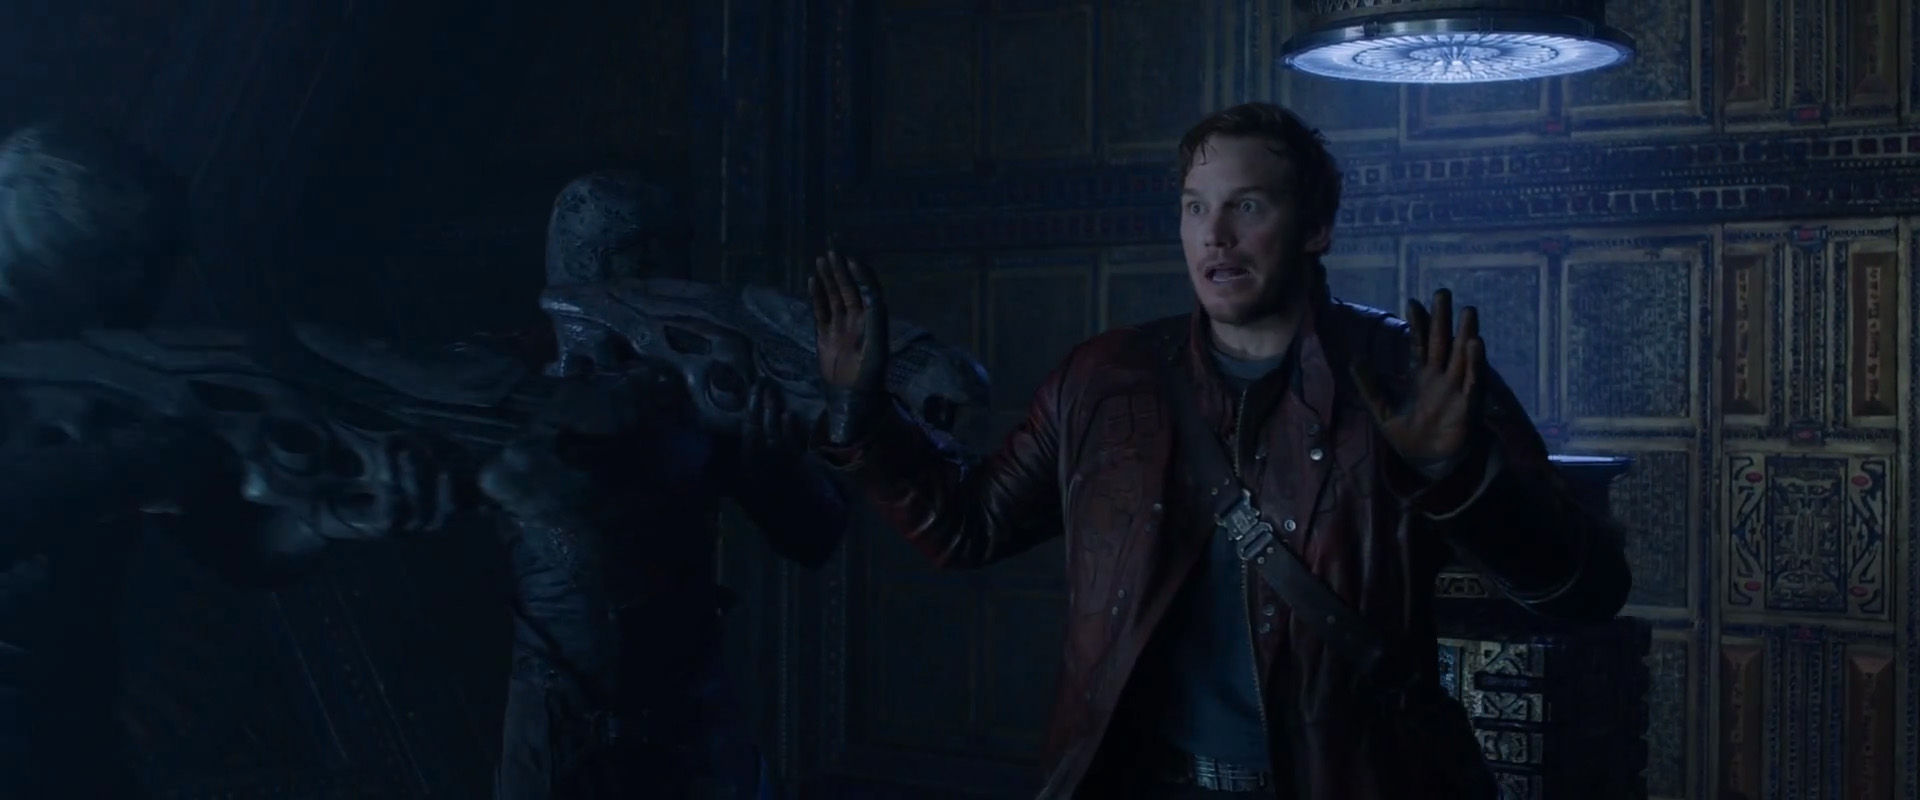 Not So Hooked on Guardians of the Galaxy | Lady Geek Girl ...